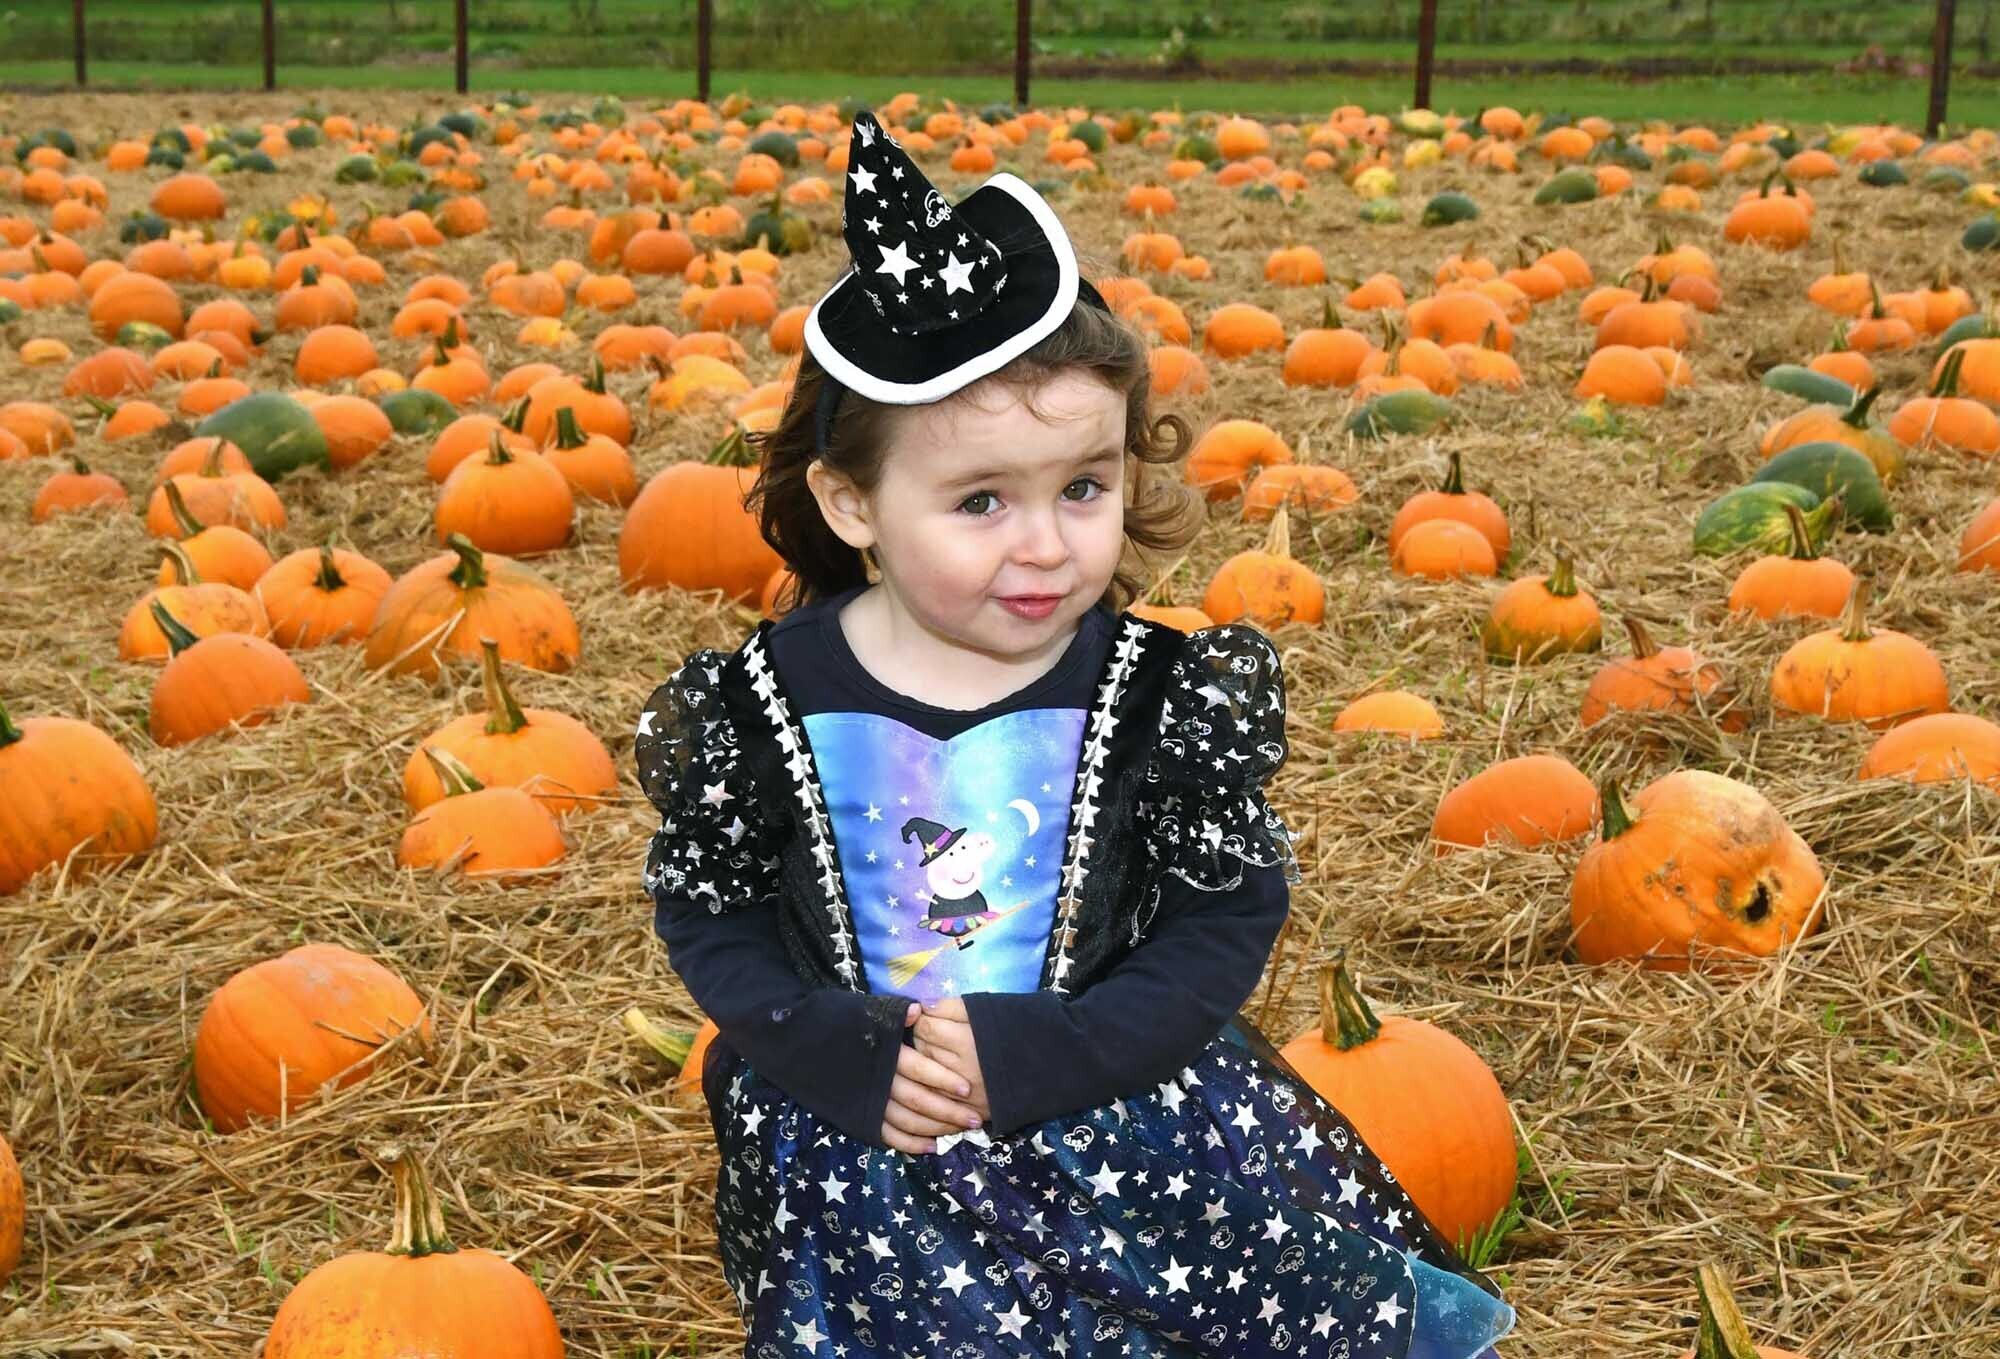 Two years old Katelyn Burns at the Pumkin Patch on the family farm, Joe's Farm, Killeagh, Co. Cork, where pumpkin picking begins this Saturday, October 9th, for Halloween.